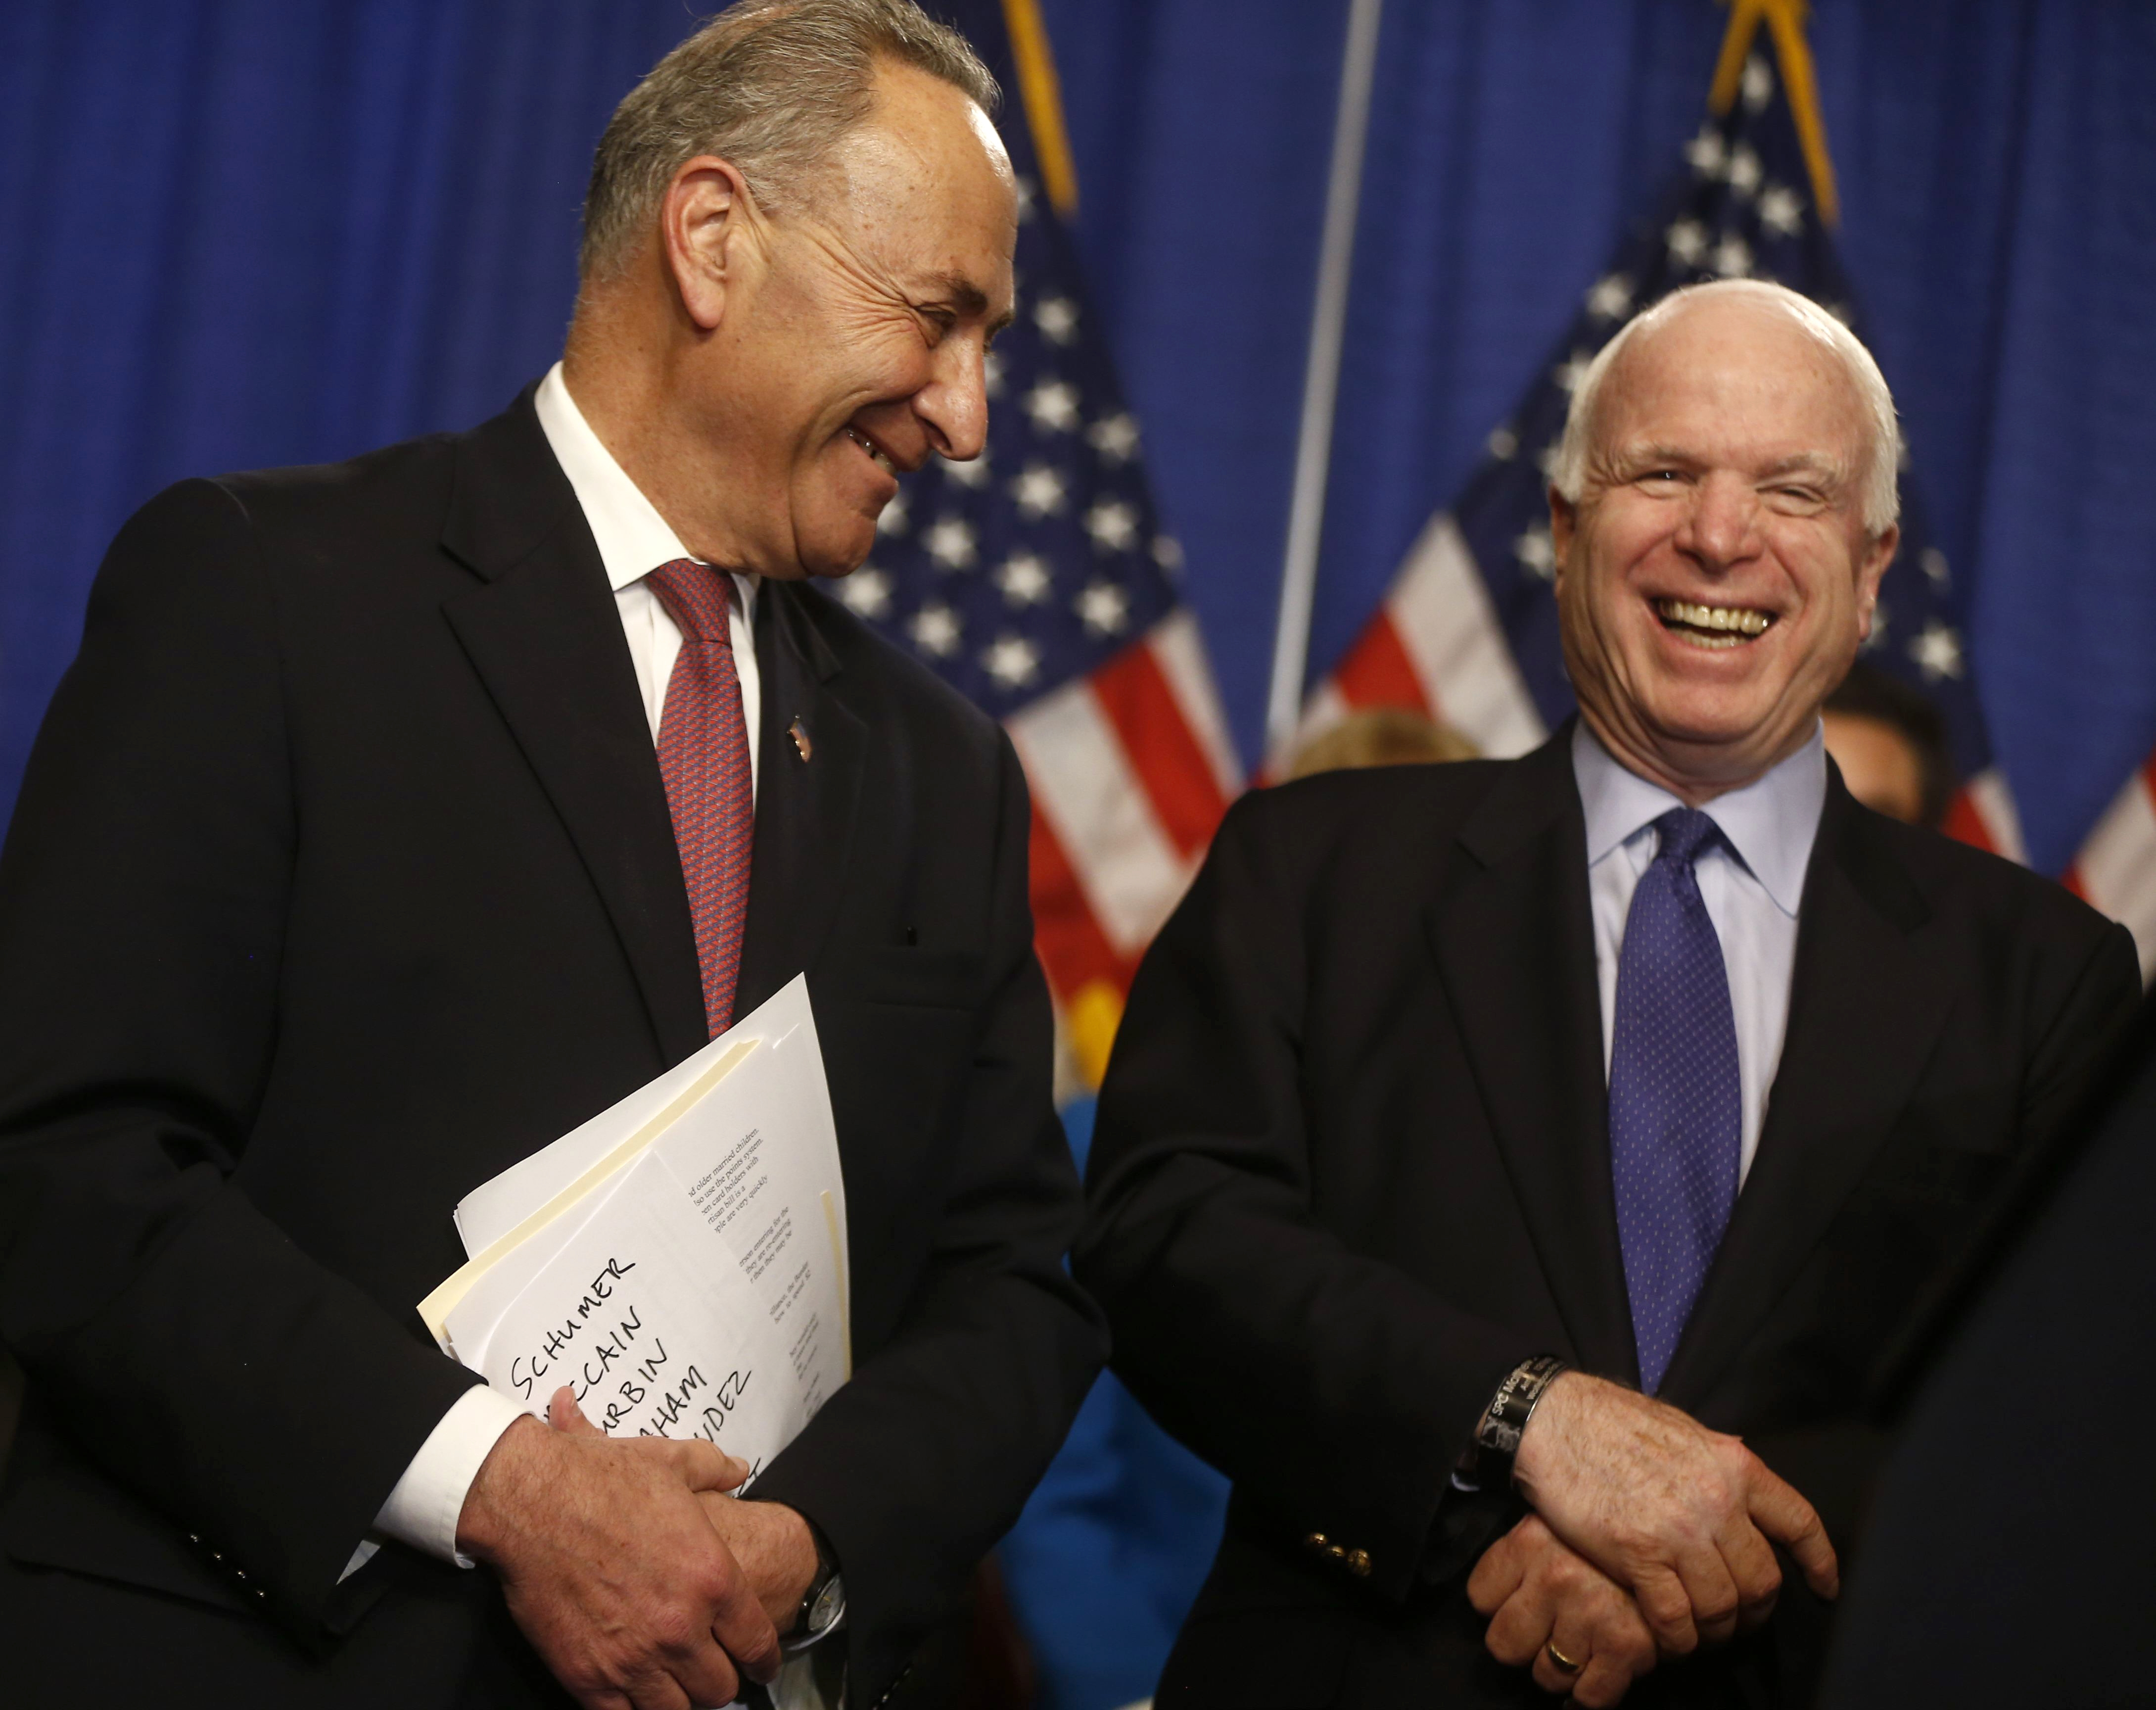 Sens. Charles E. Schumer, left, and John McCain have overcome their long-standing partisan rivalry and now speak highly of each other's efforts to come up with an immigration bill that has a chance to pass in the Senate.